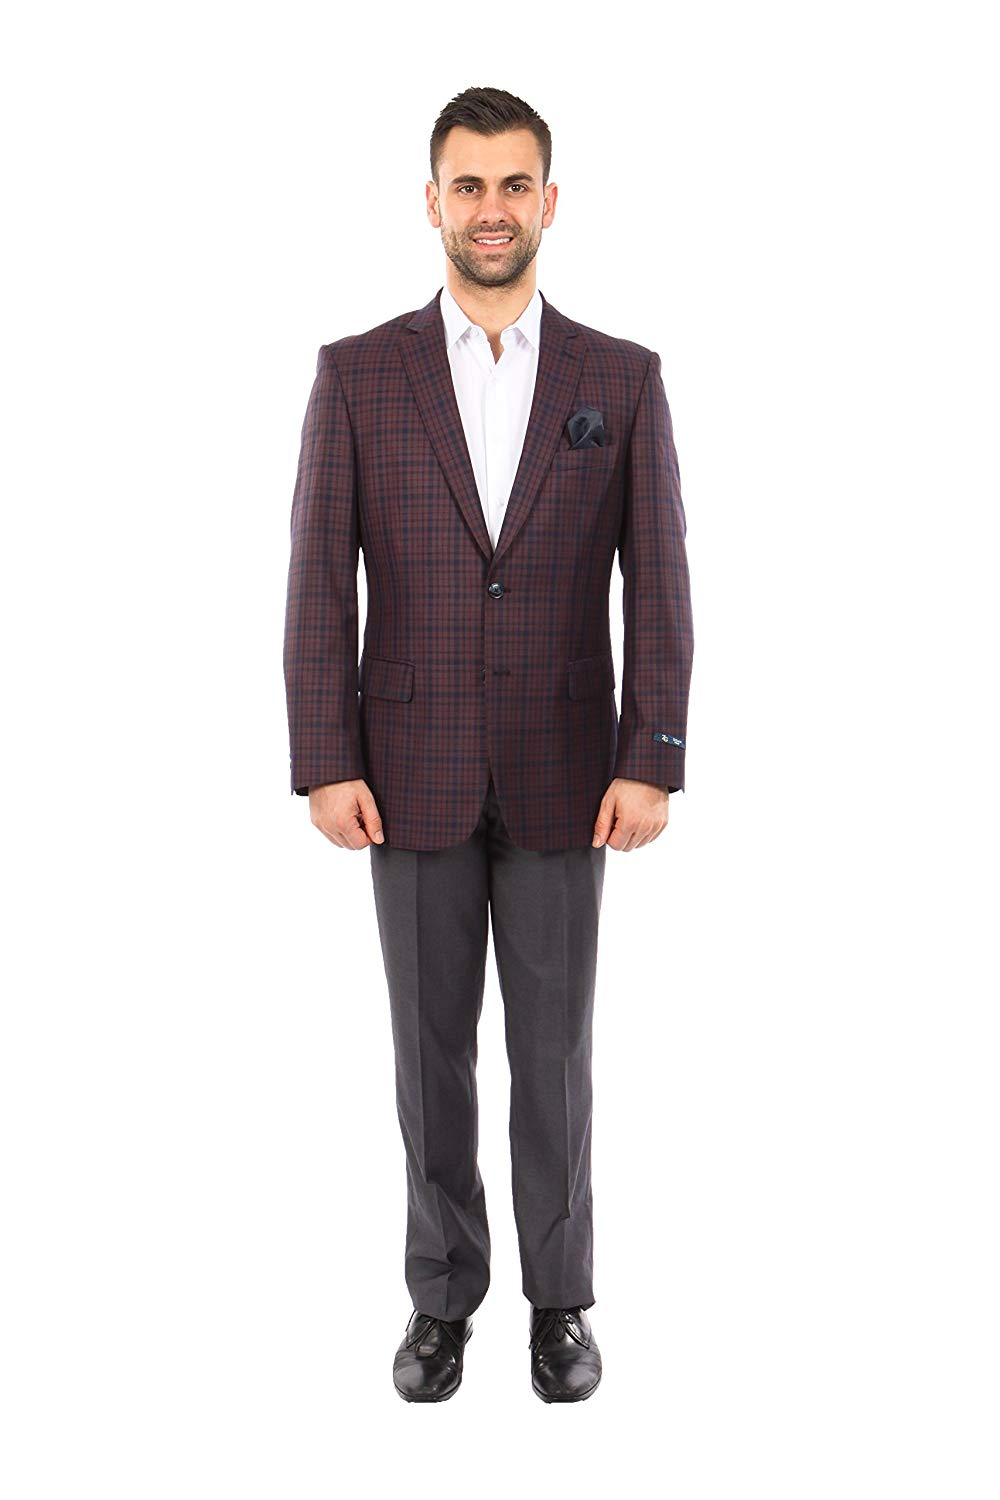 TAZIO Mens Jacket Modern Fit Check Plaid Blazer Sports Coat